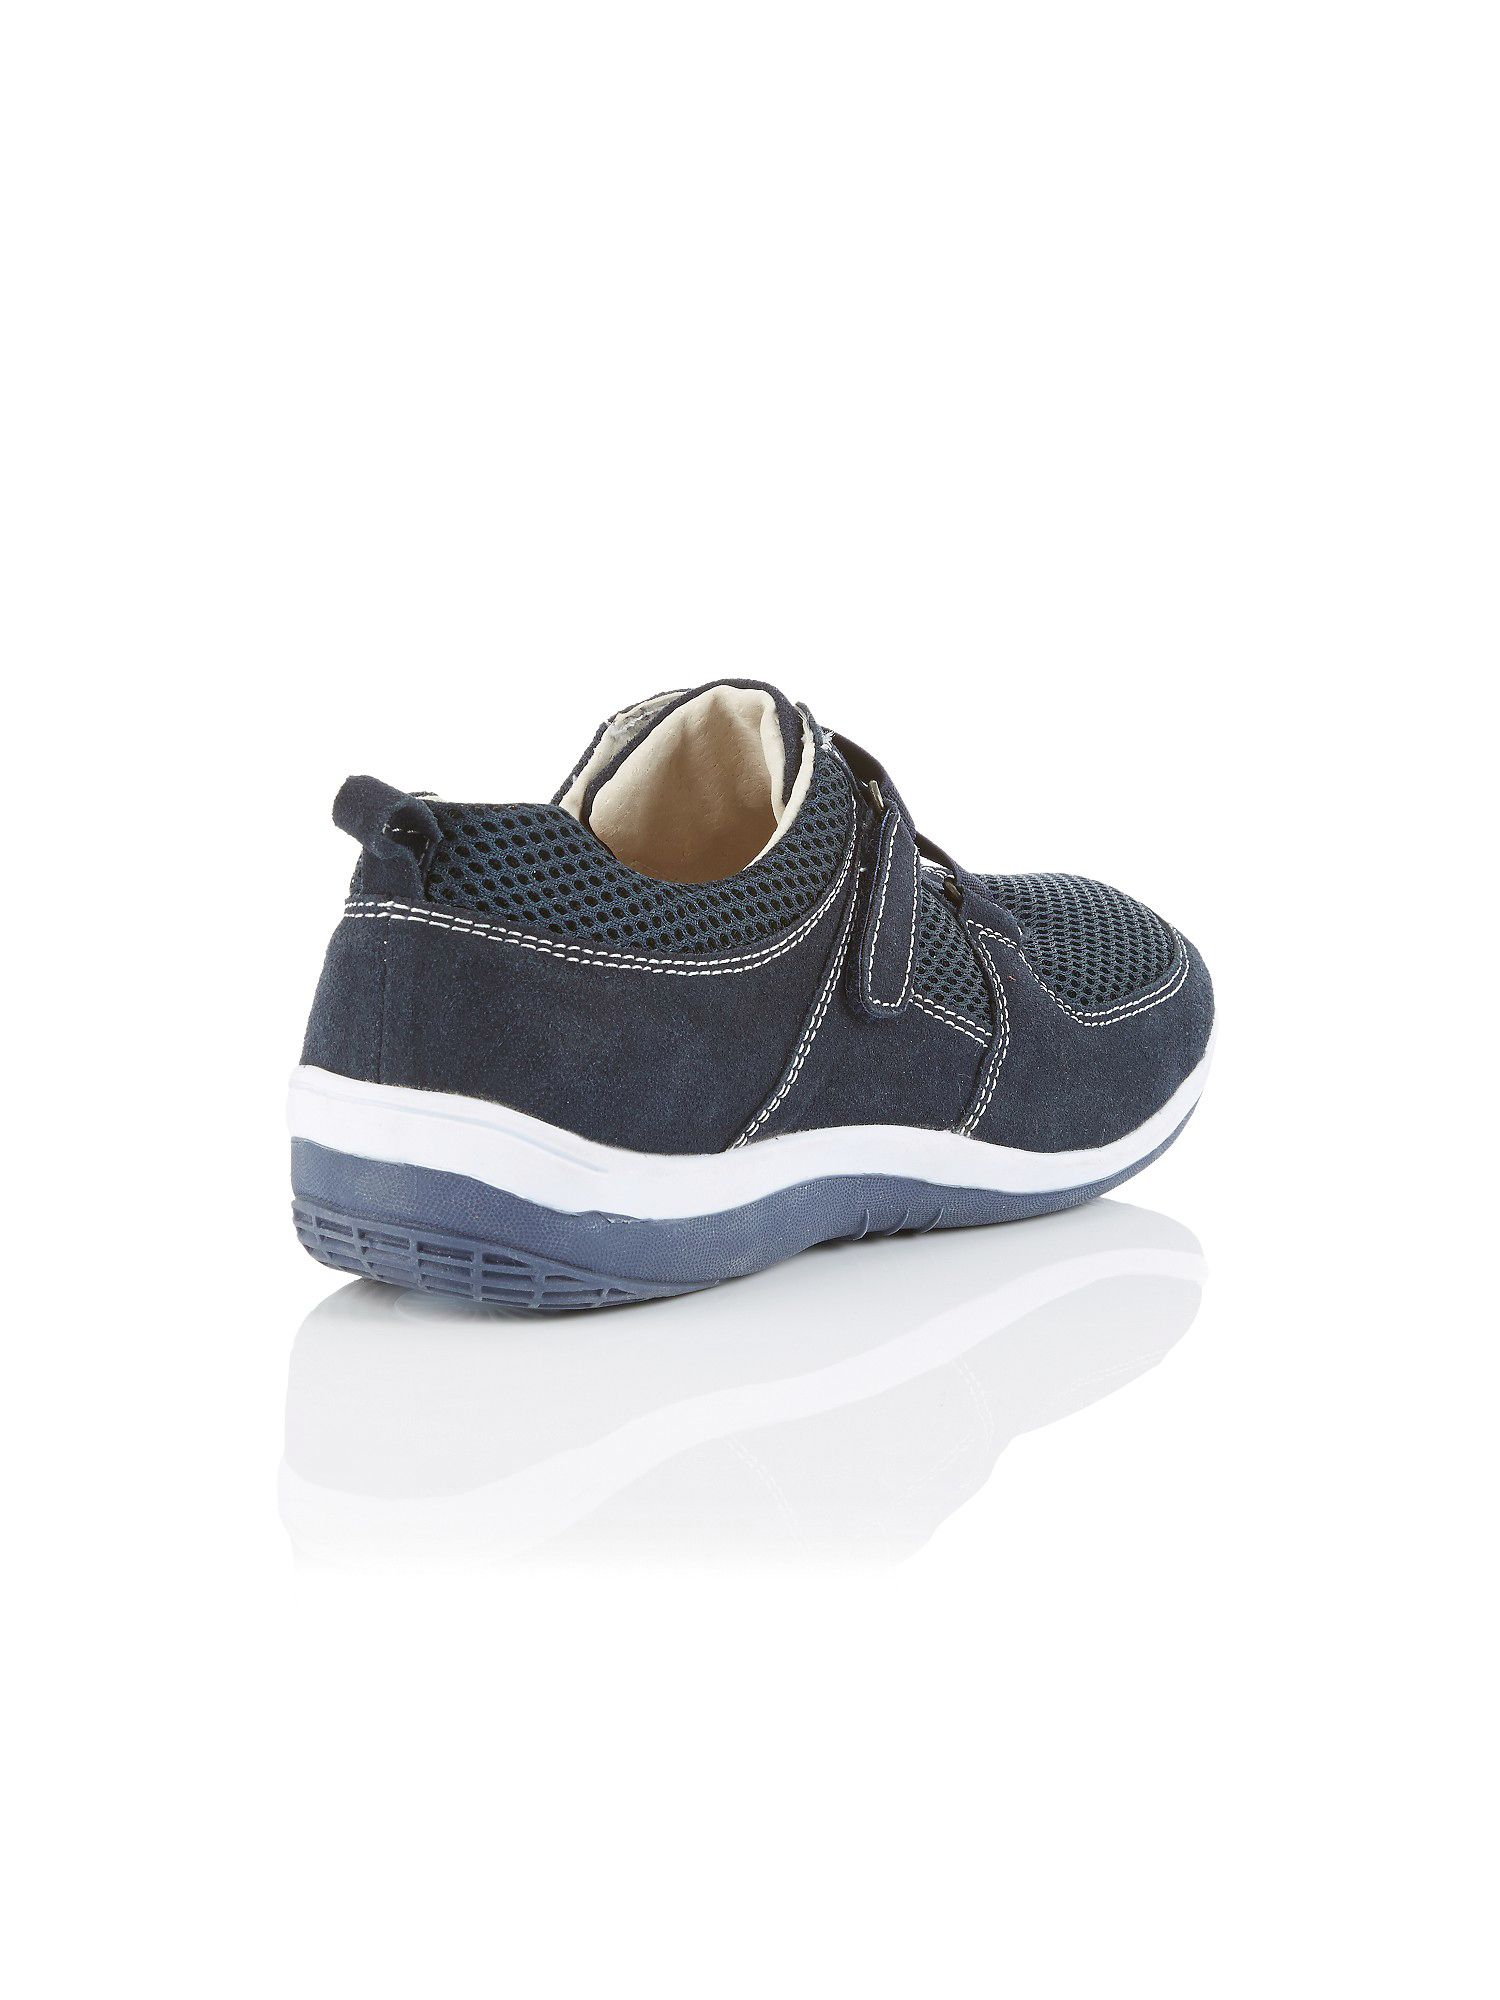 Navy velcro mesh sporty shoe